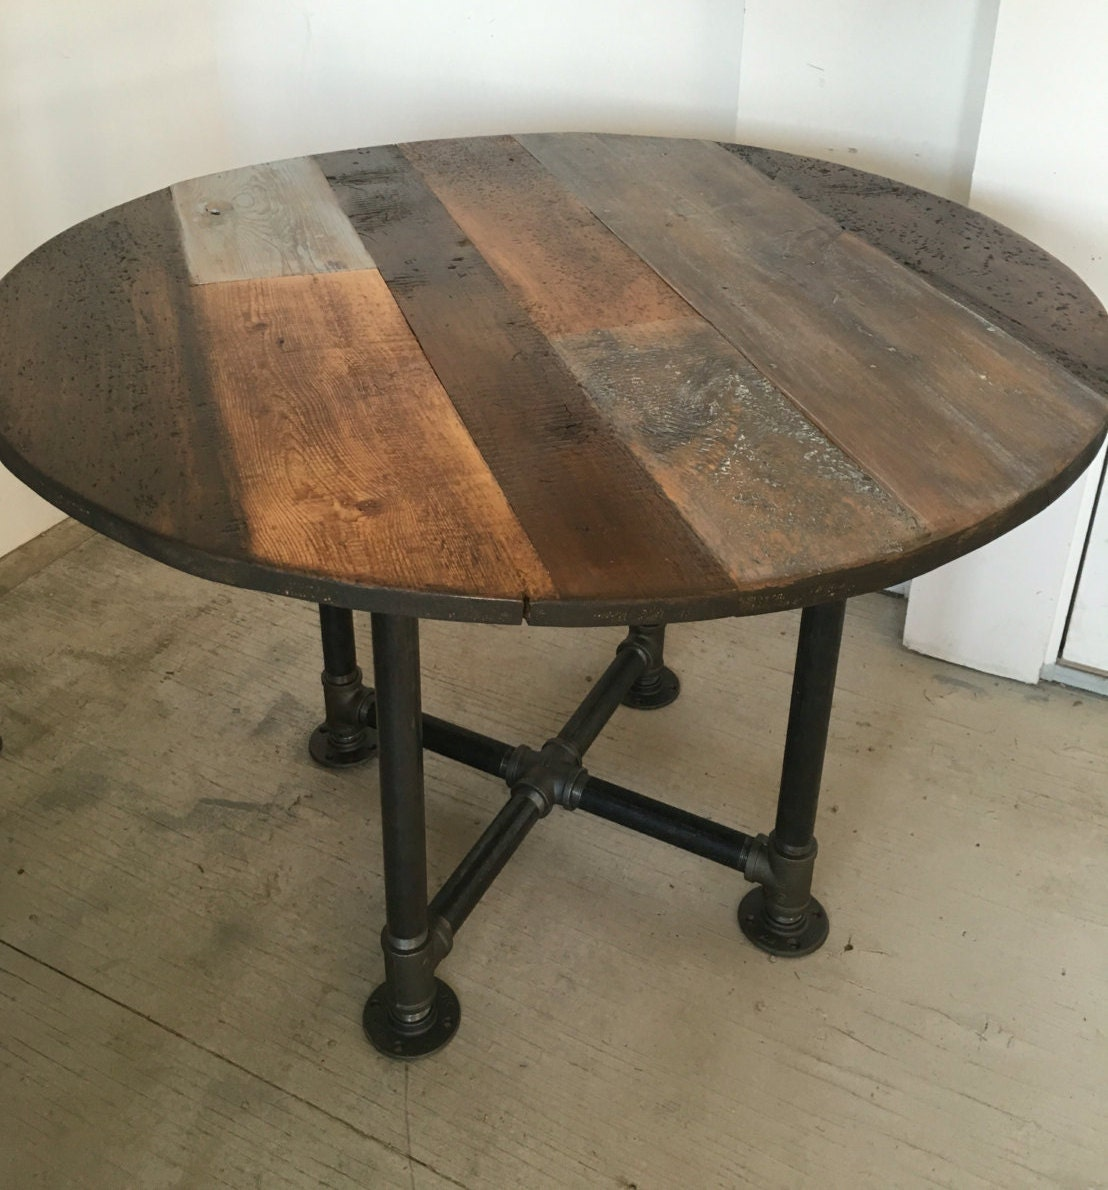 Round table dining tablepipe leg base reclaimed wood planks for One leg dining table